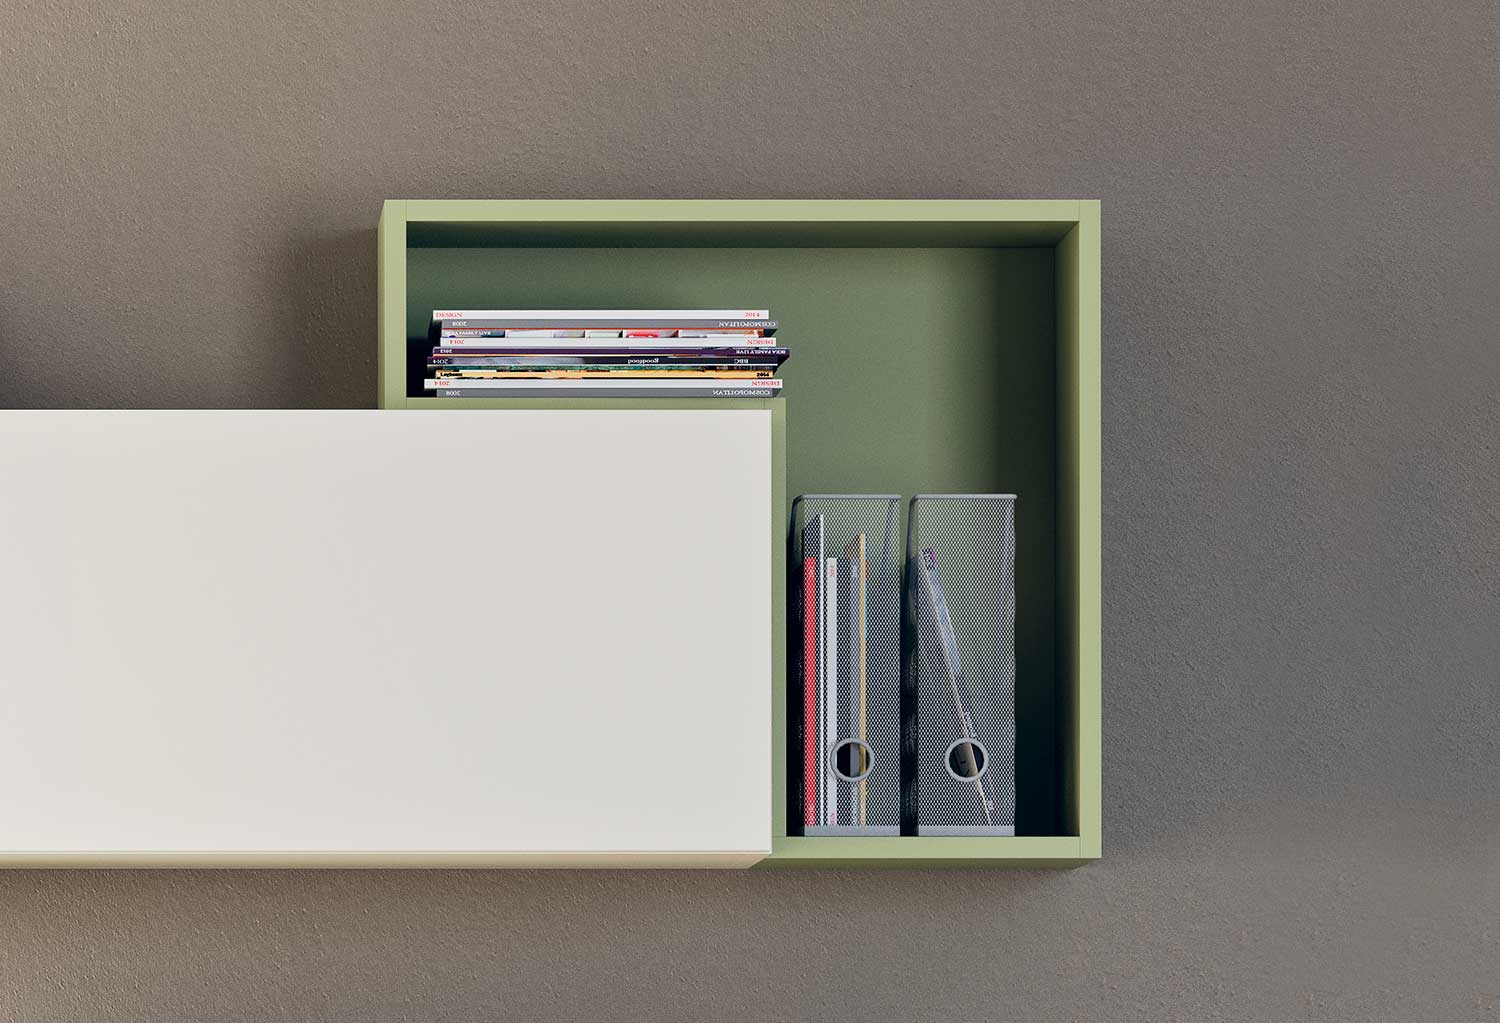 Small floating shelf for folders, books, volumes